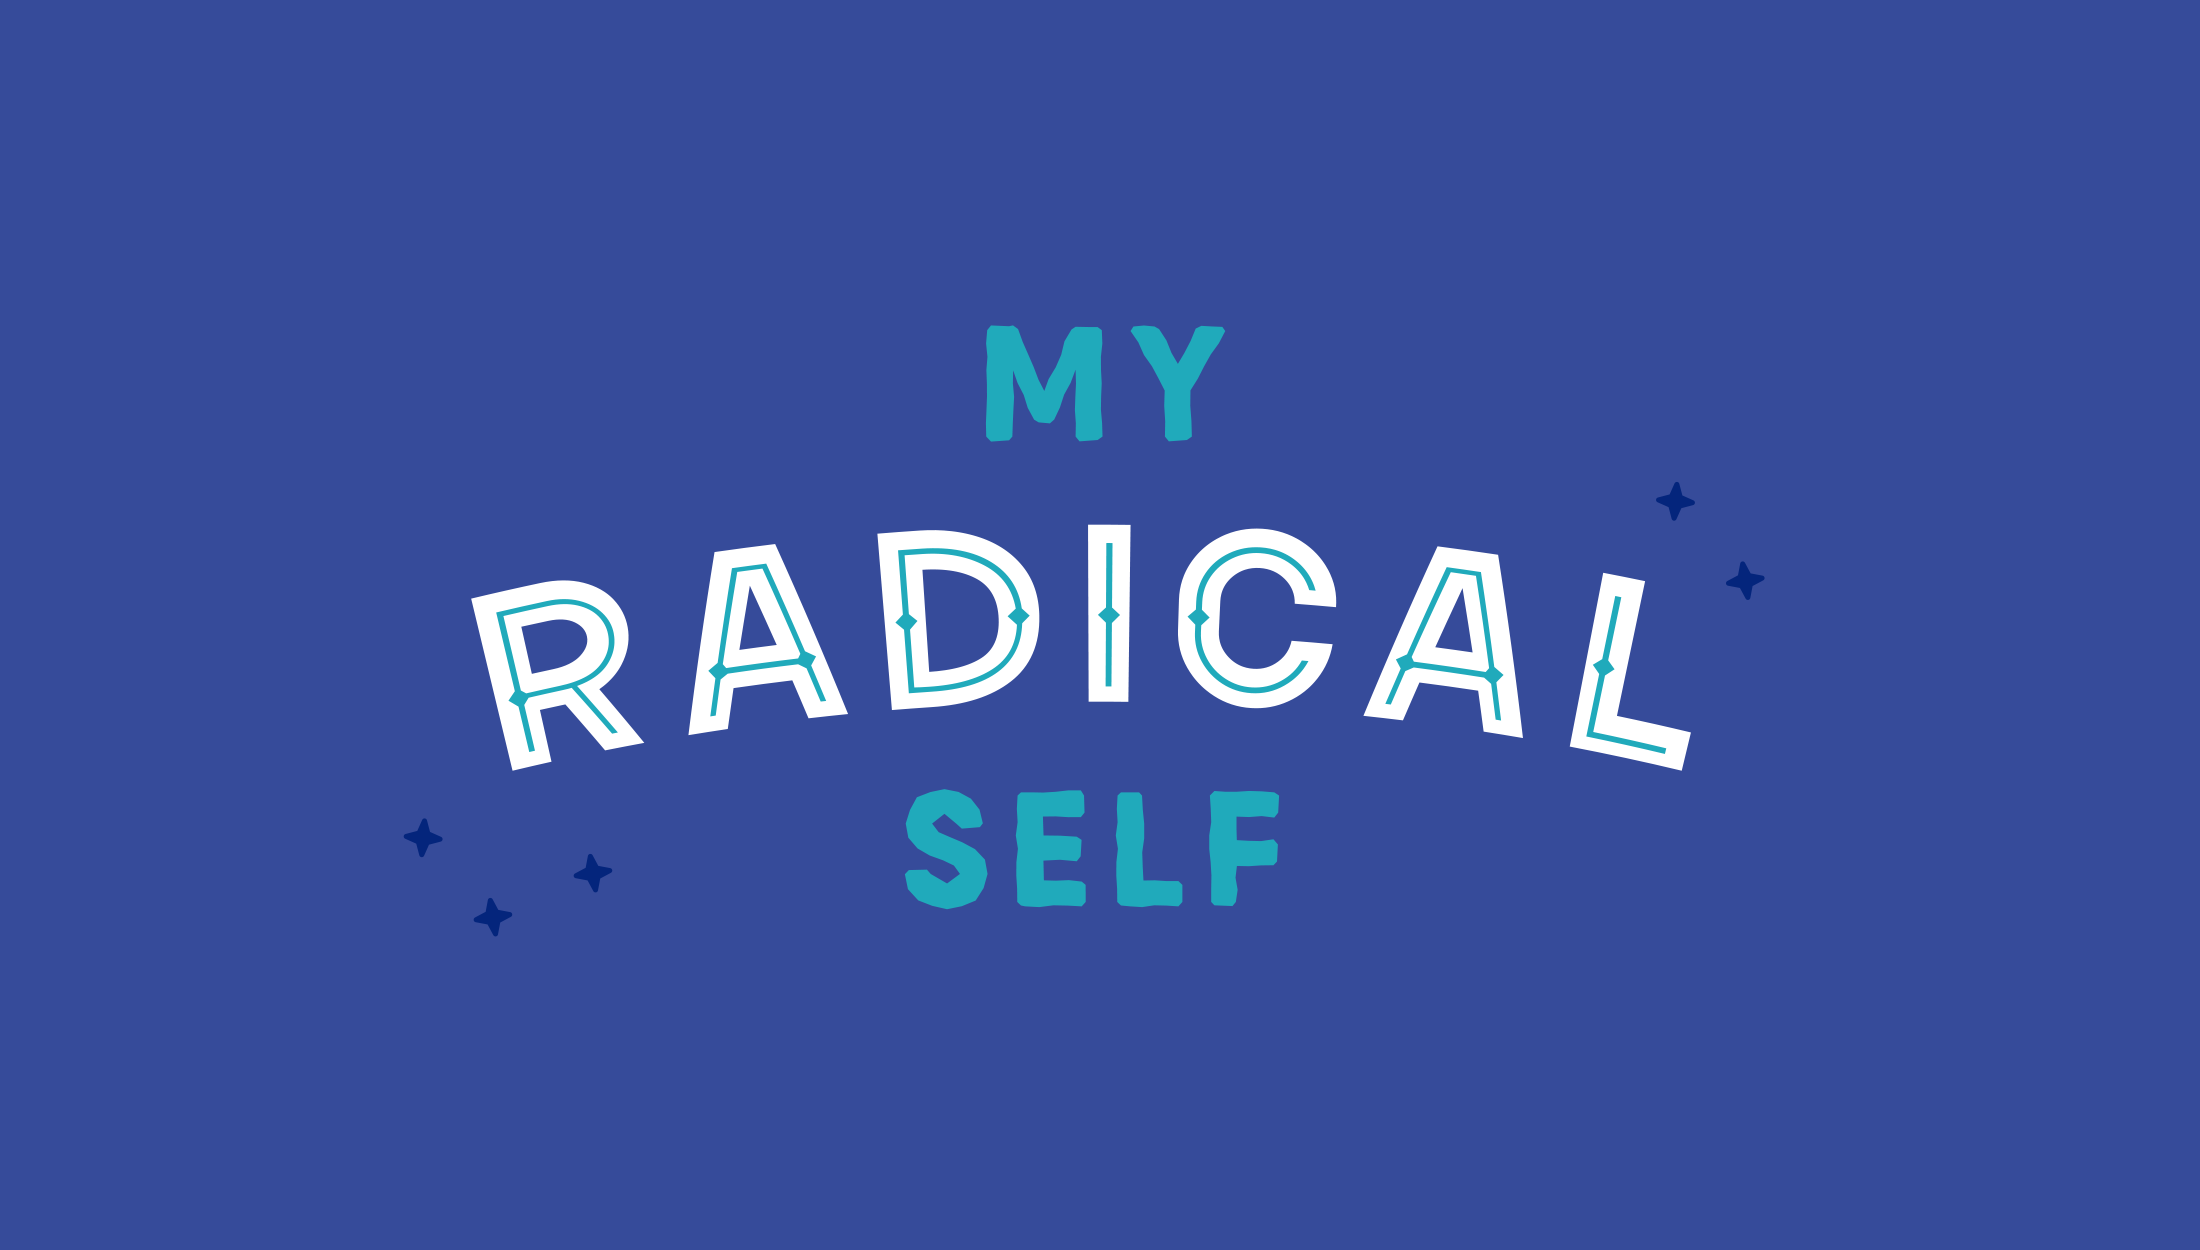 Final logo design for My Radical Self, an online community and blog for women focusing on self-love, feminism and mindfulness - designed by Wiltshire-based graphic designer, Kaye Huett